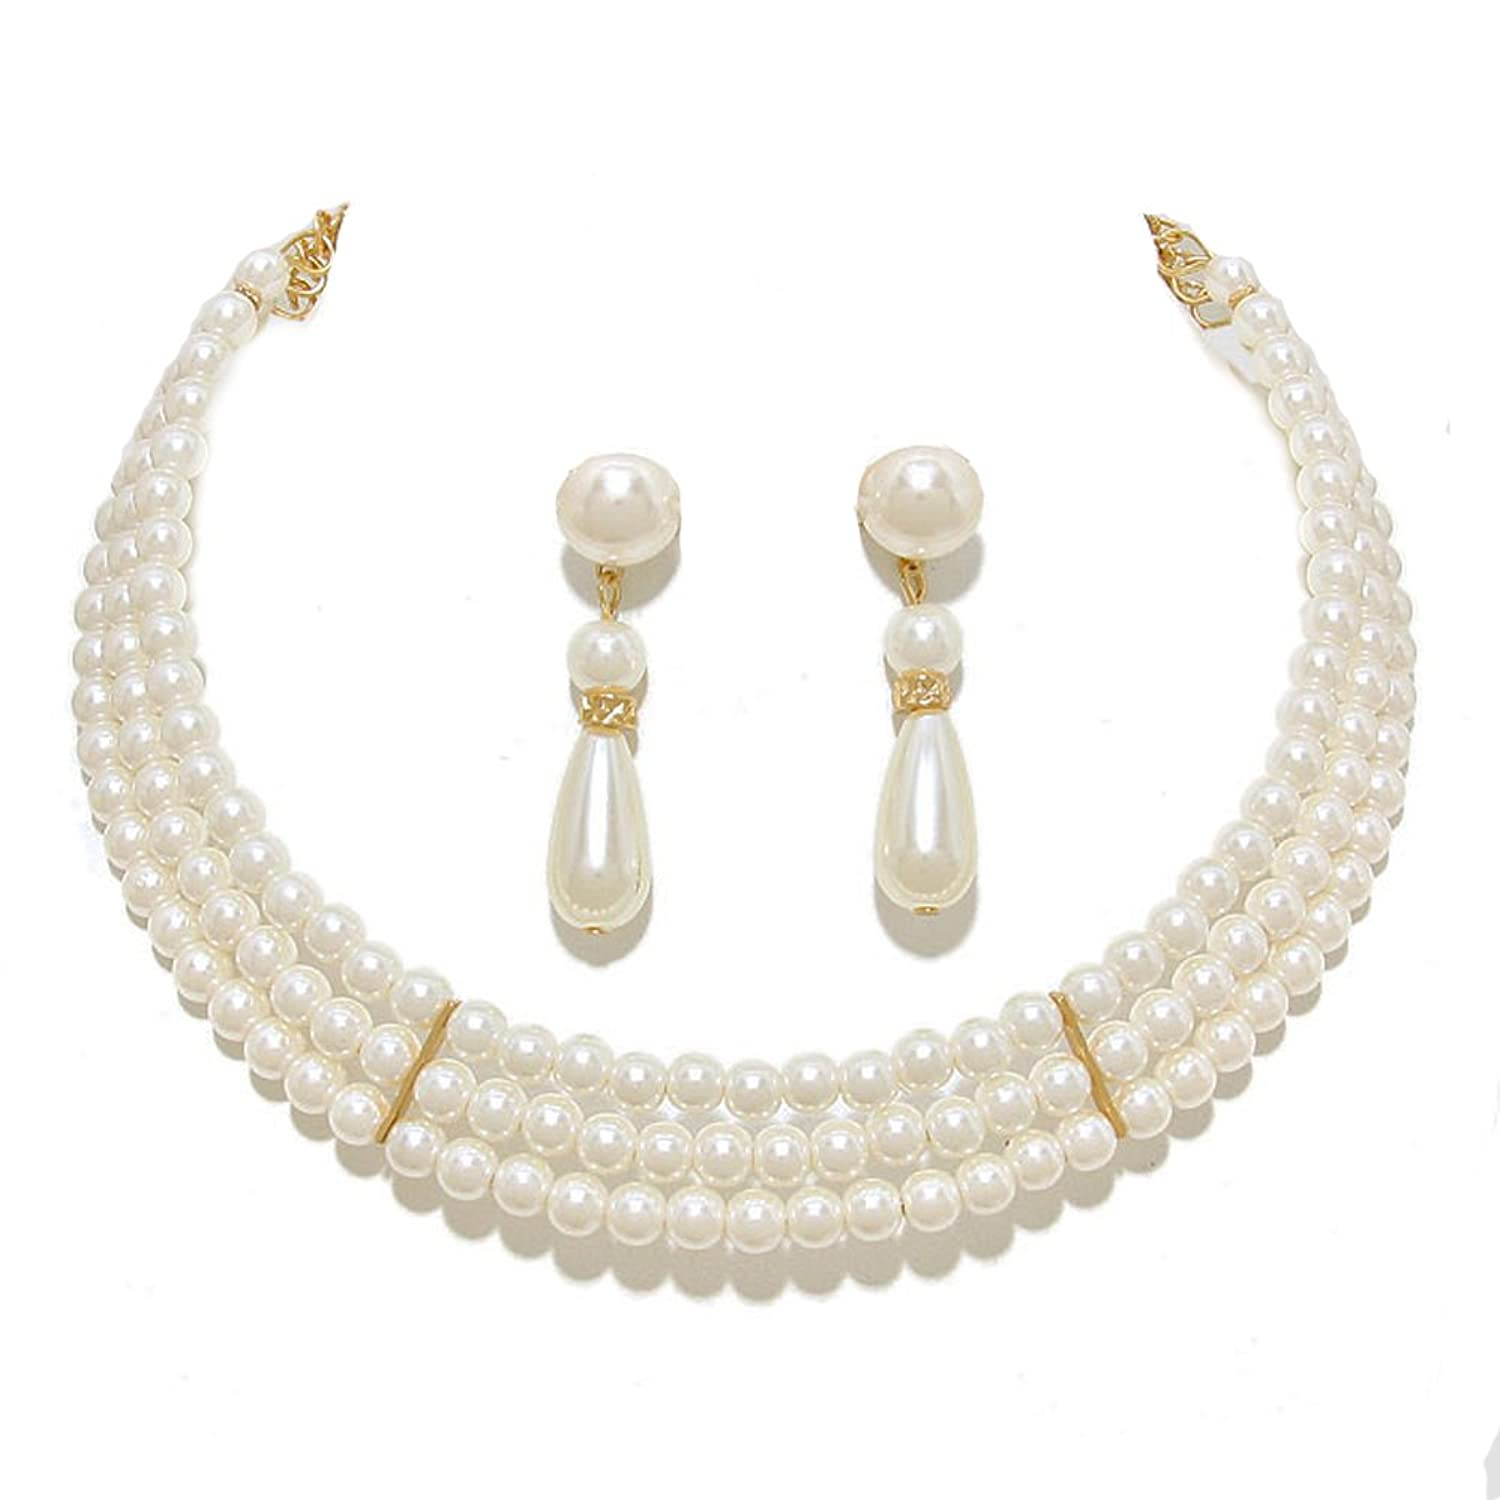 1950s Jewelry Styles and History 3 Rows Elegant Simulated Pearl Choker Necklace Pierced Earring 2 Set $9.99 AT vintagedancer.com